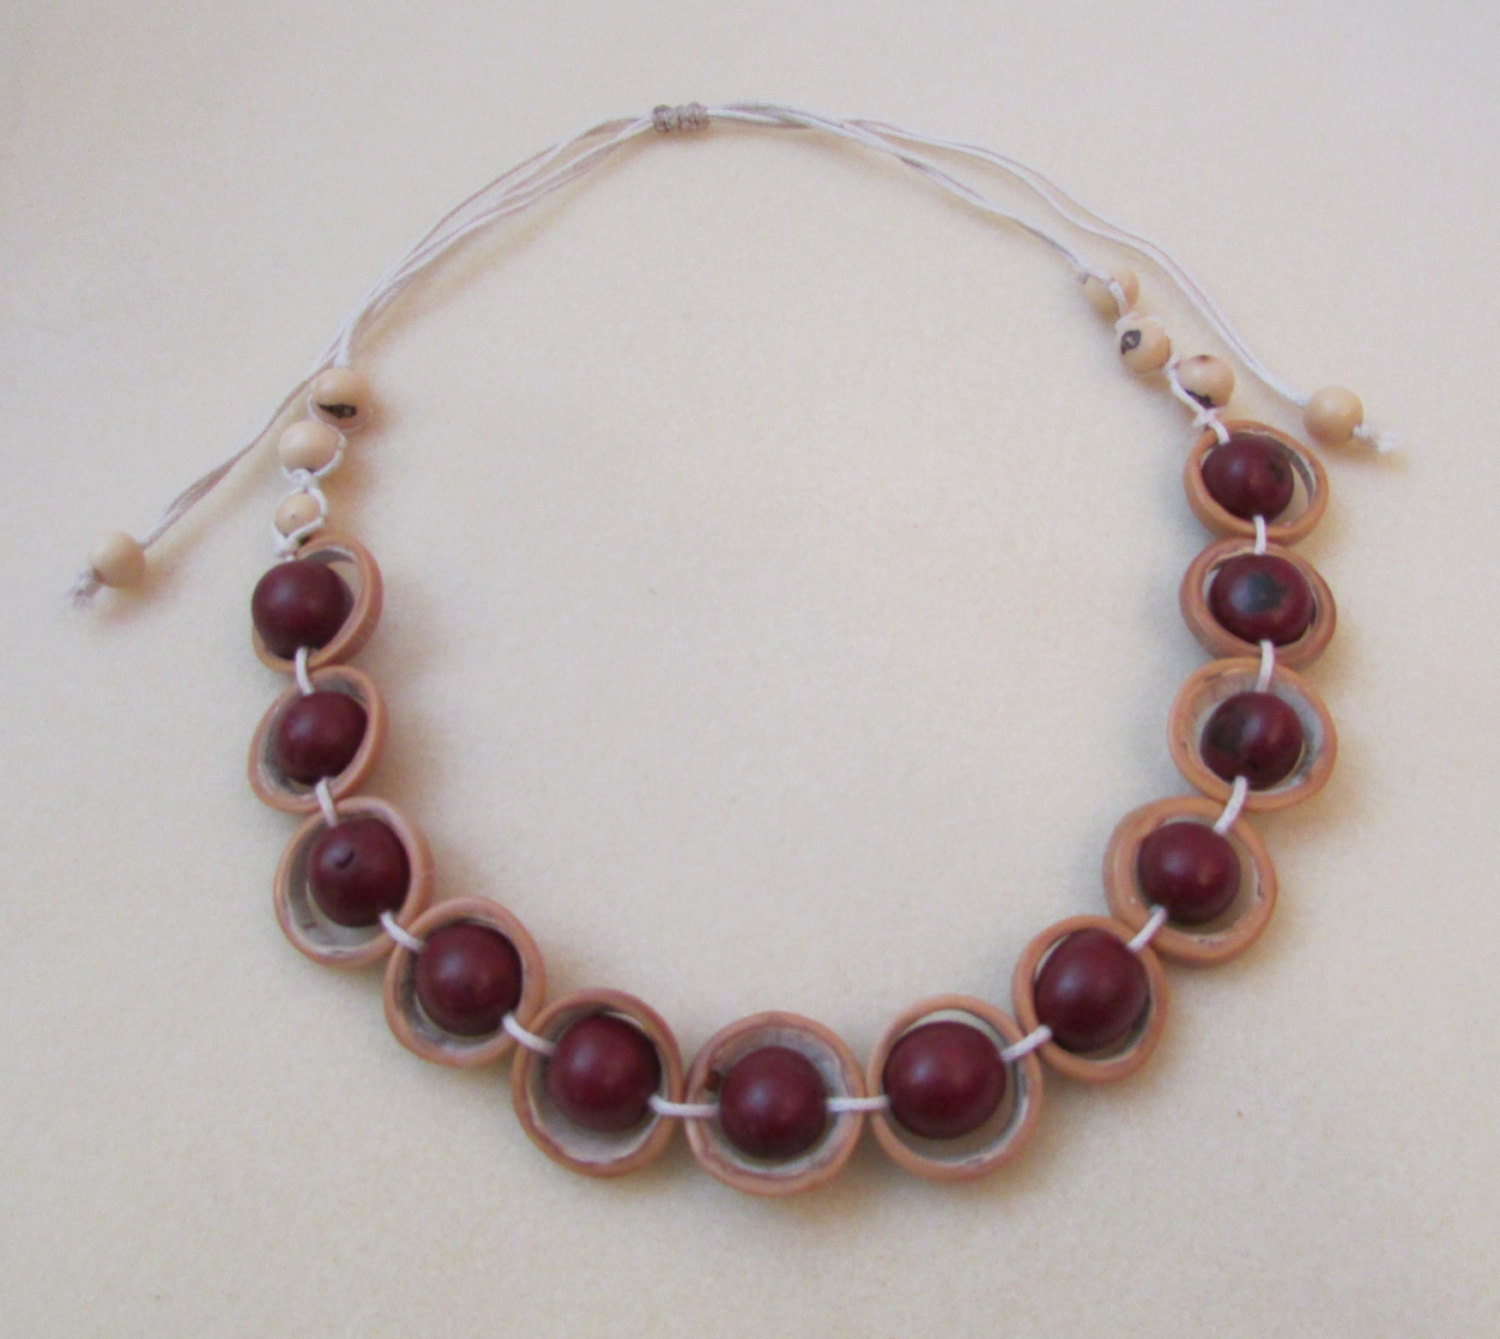 Natural seeds necklace eco friendly jewelry nut necklace for Natural seeds for jewelry making